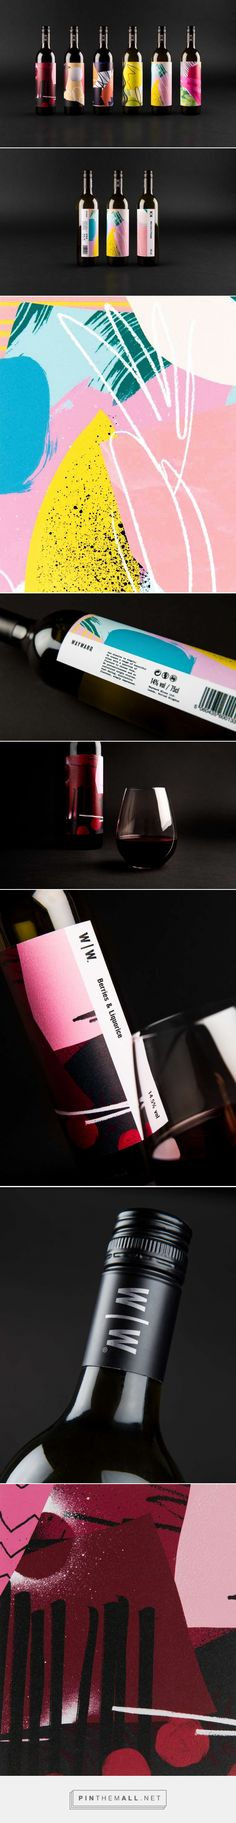 Wayward Wines (Concept) - Packaging of the World - Creative Package Design Gallery - Wayward #Wines #packaging #design by Robot Food - http://www.packagingoftheworld.com/2017/08/wayward-wines-concept.html